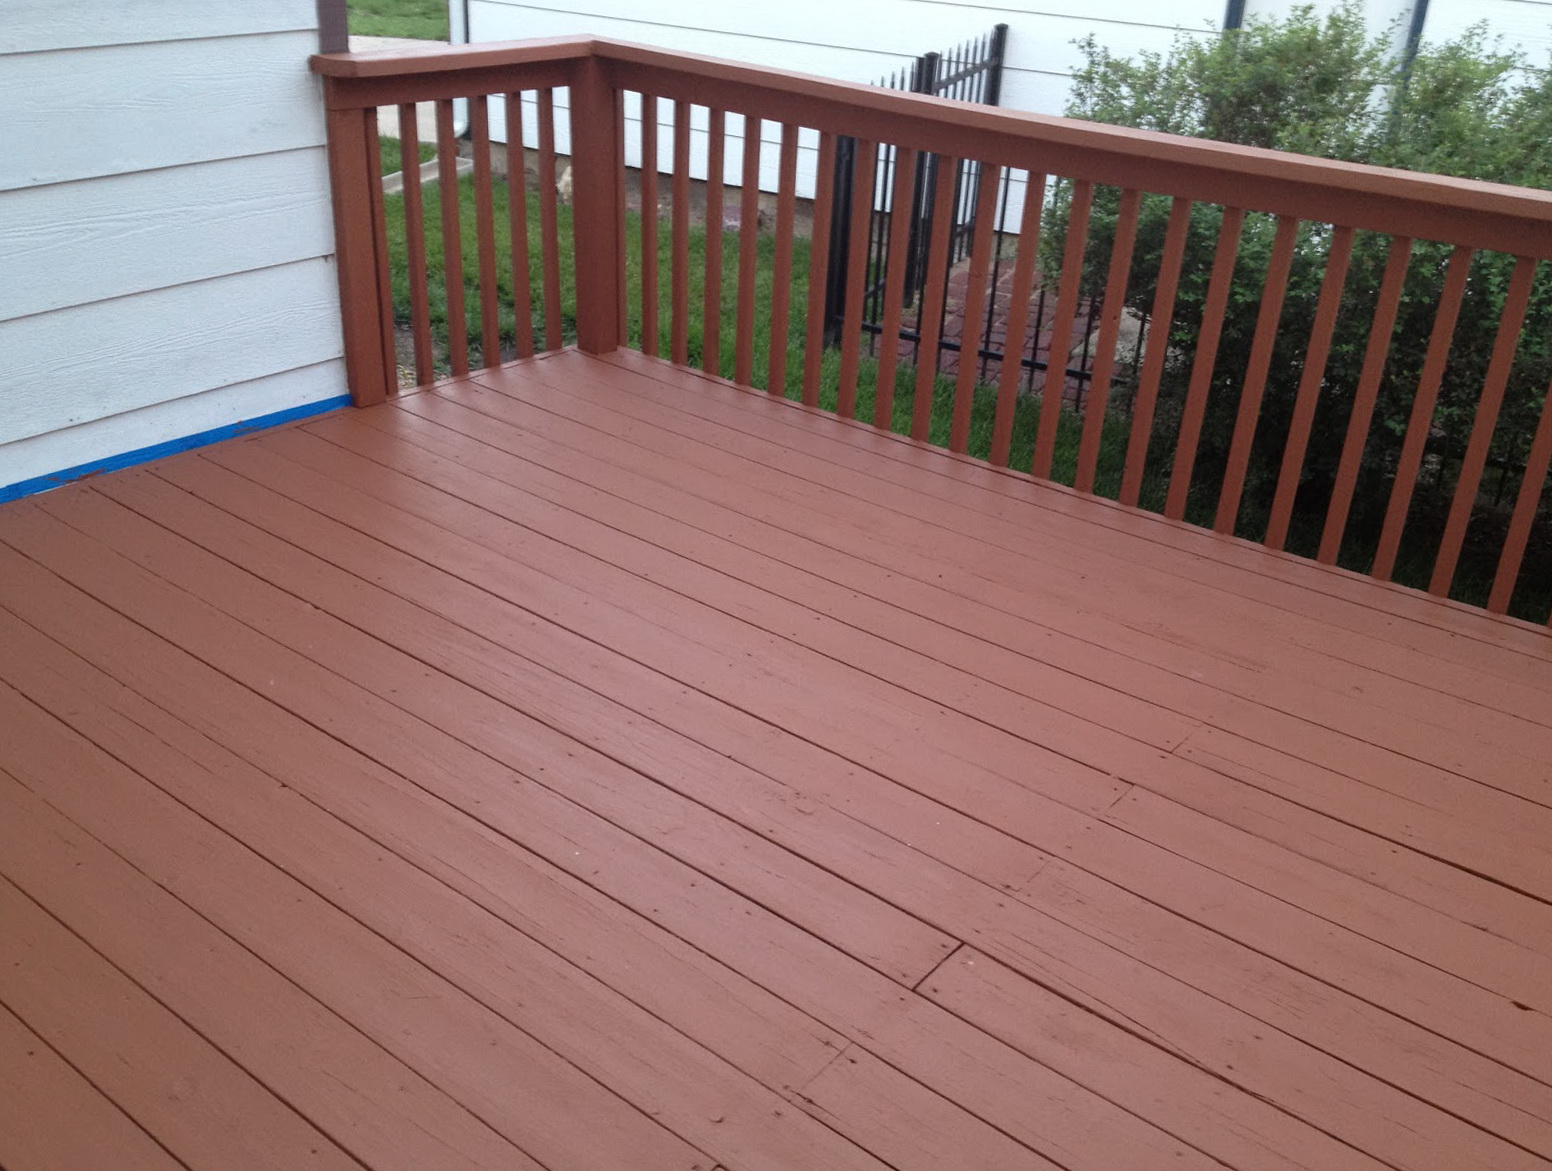 Behr deck over colors home design ideas behr deck over colors nvjuhfo Image collections